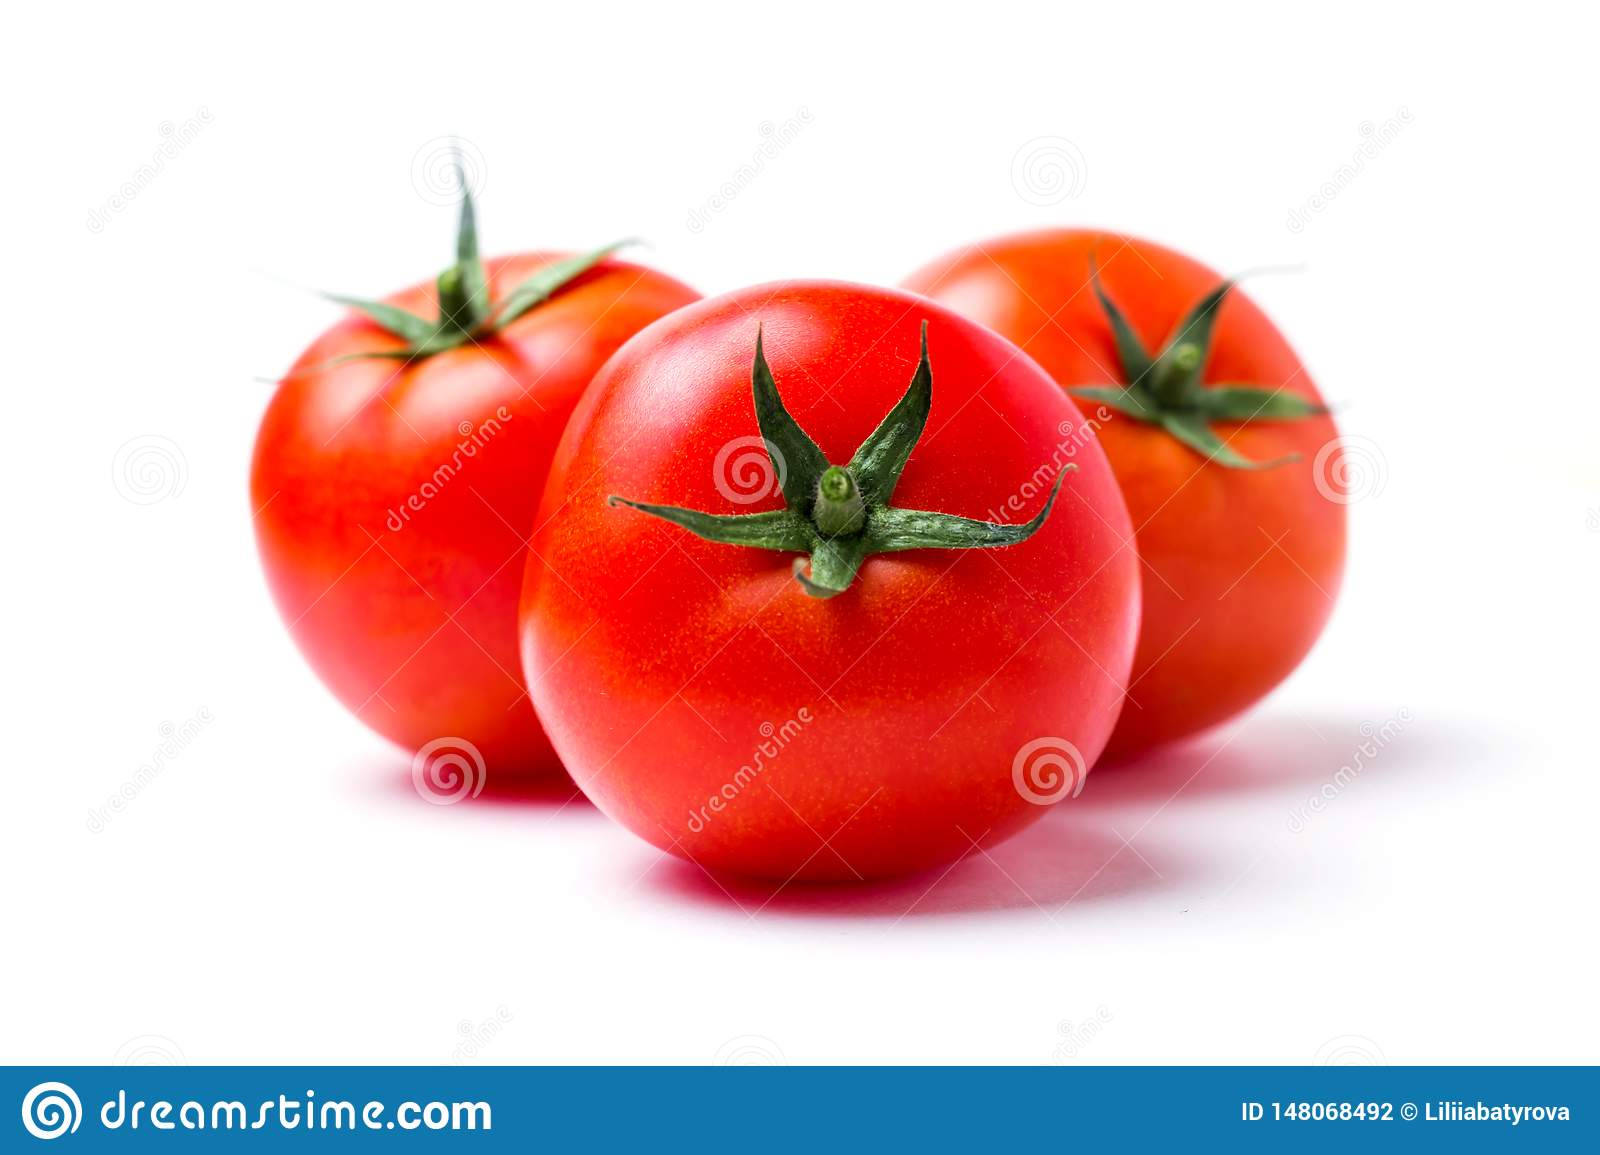 Three ripe red tomatoes on white isolate background, closeup